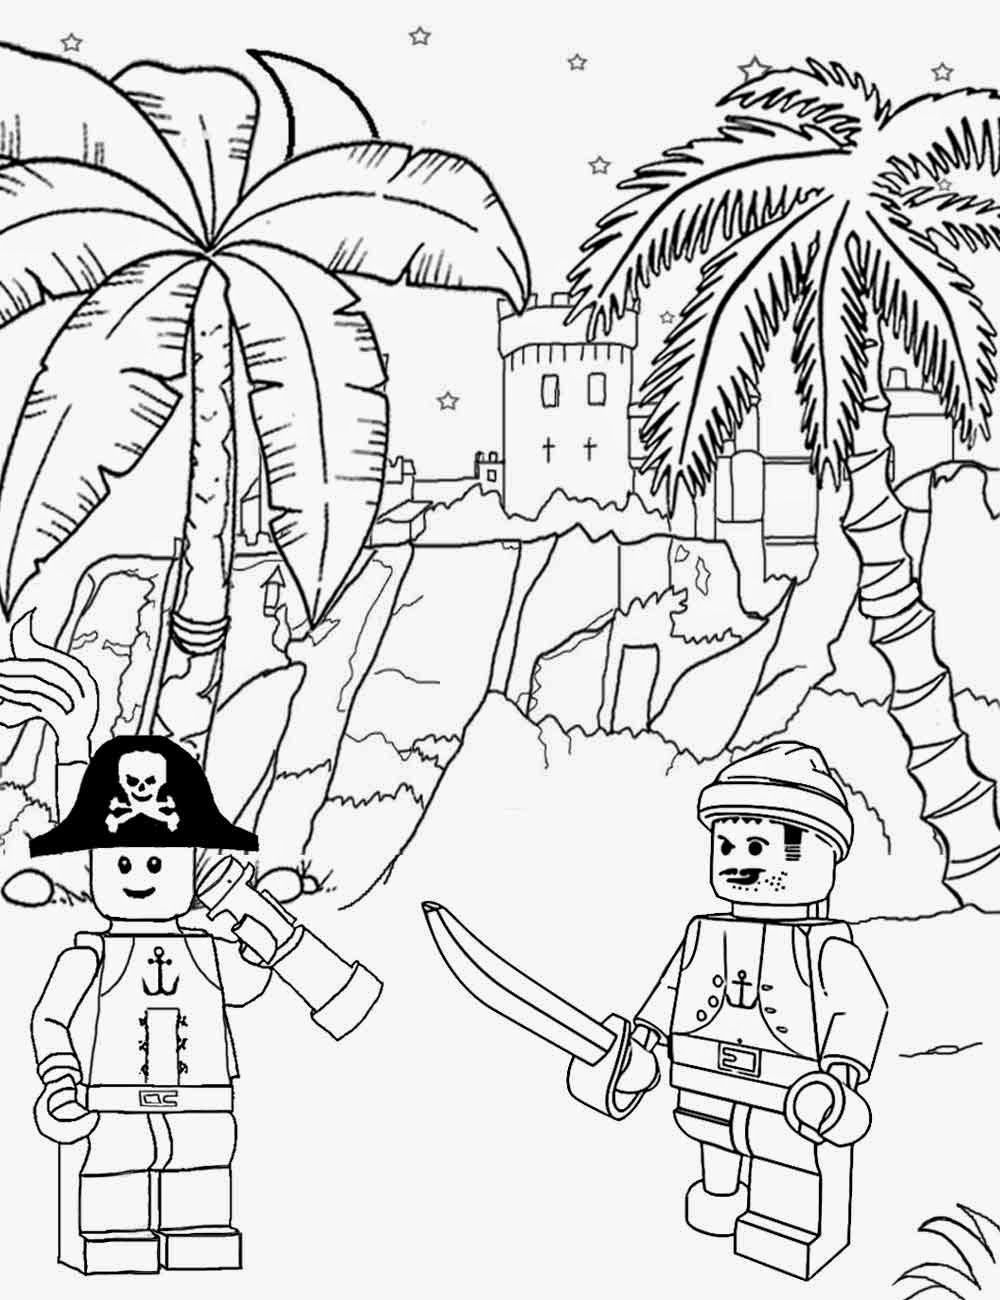 disney pirates of the caribbean coloring pages Long John